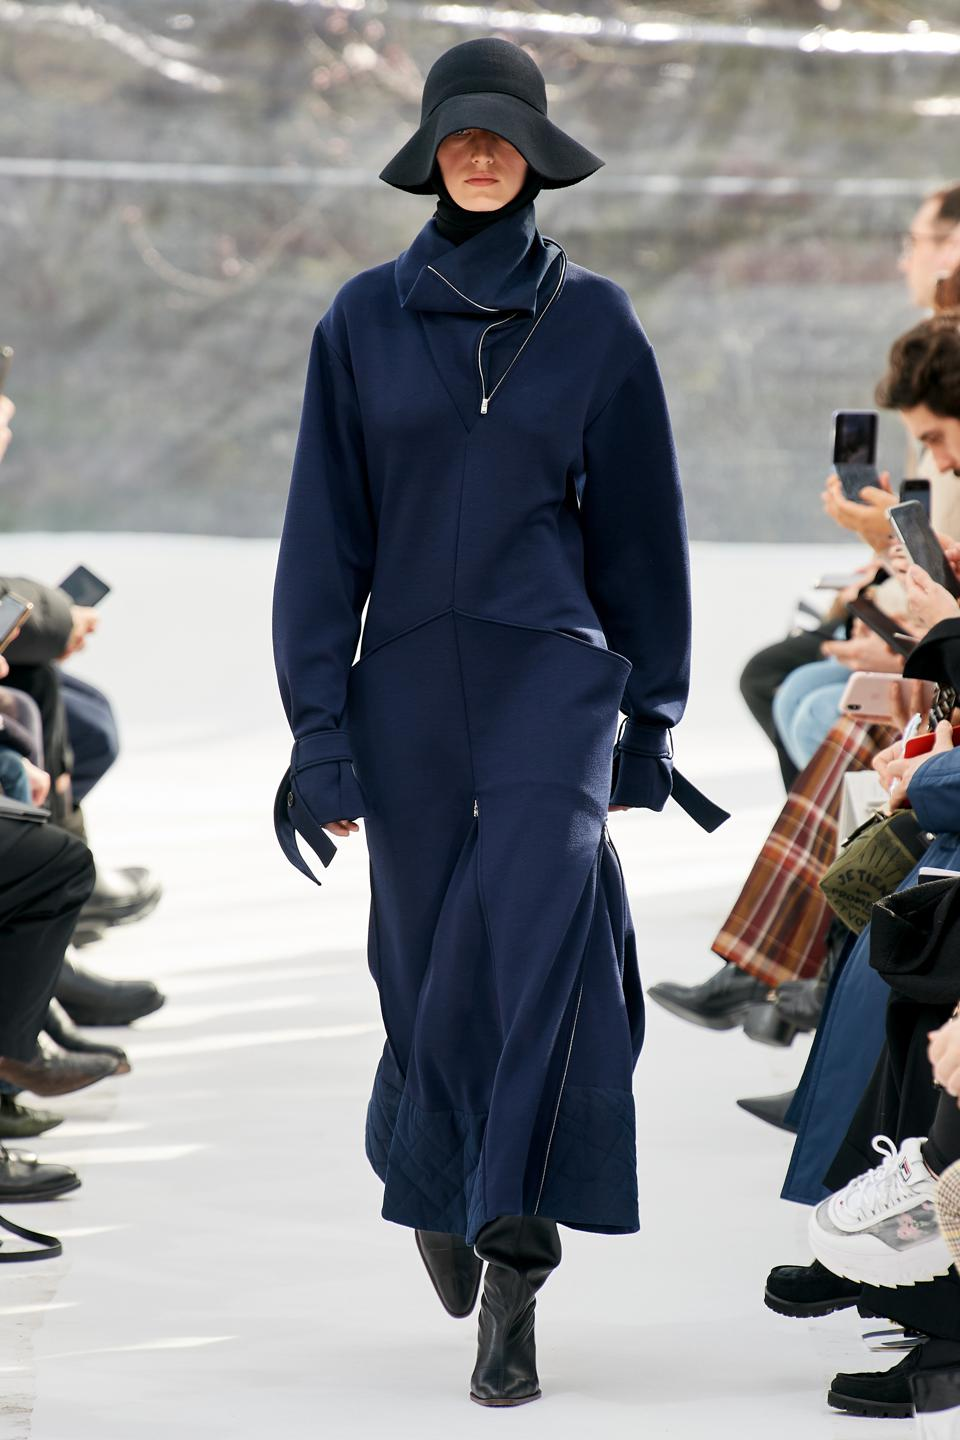 KENZO by Felipe Oliveira Baptista, Fall/Winter 2020.   High neck long dress in techno milano   Billow high top boots in goat leather   Scarf hat in knit wool and cashmere